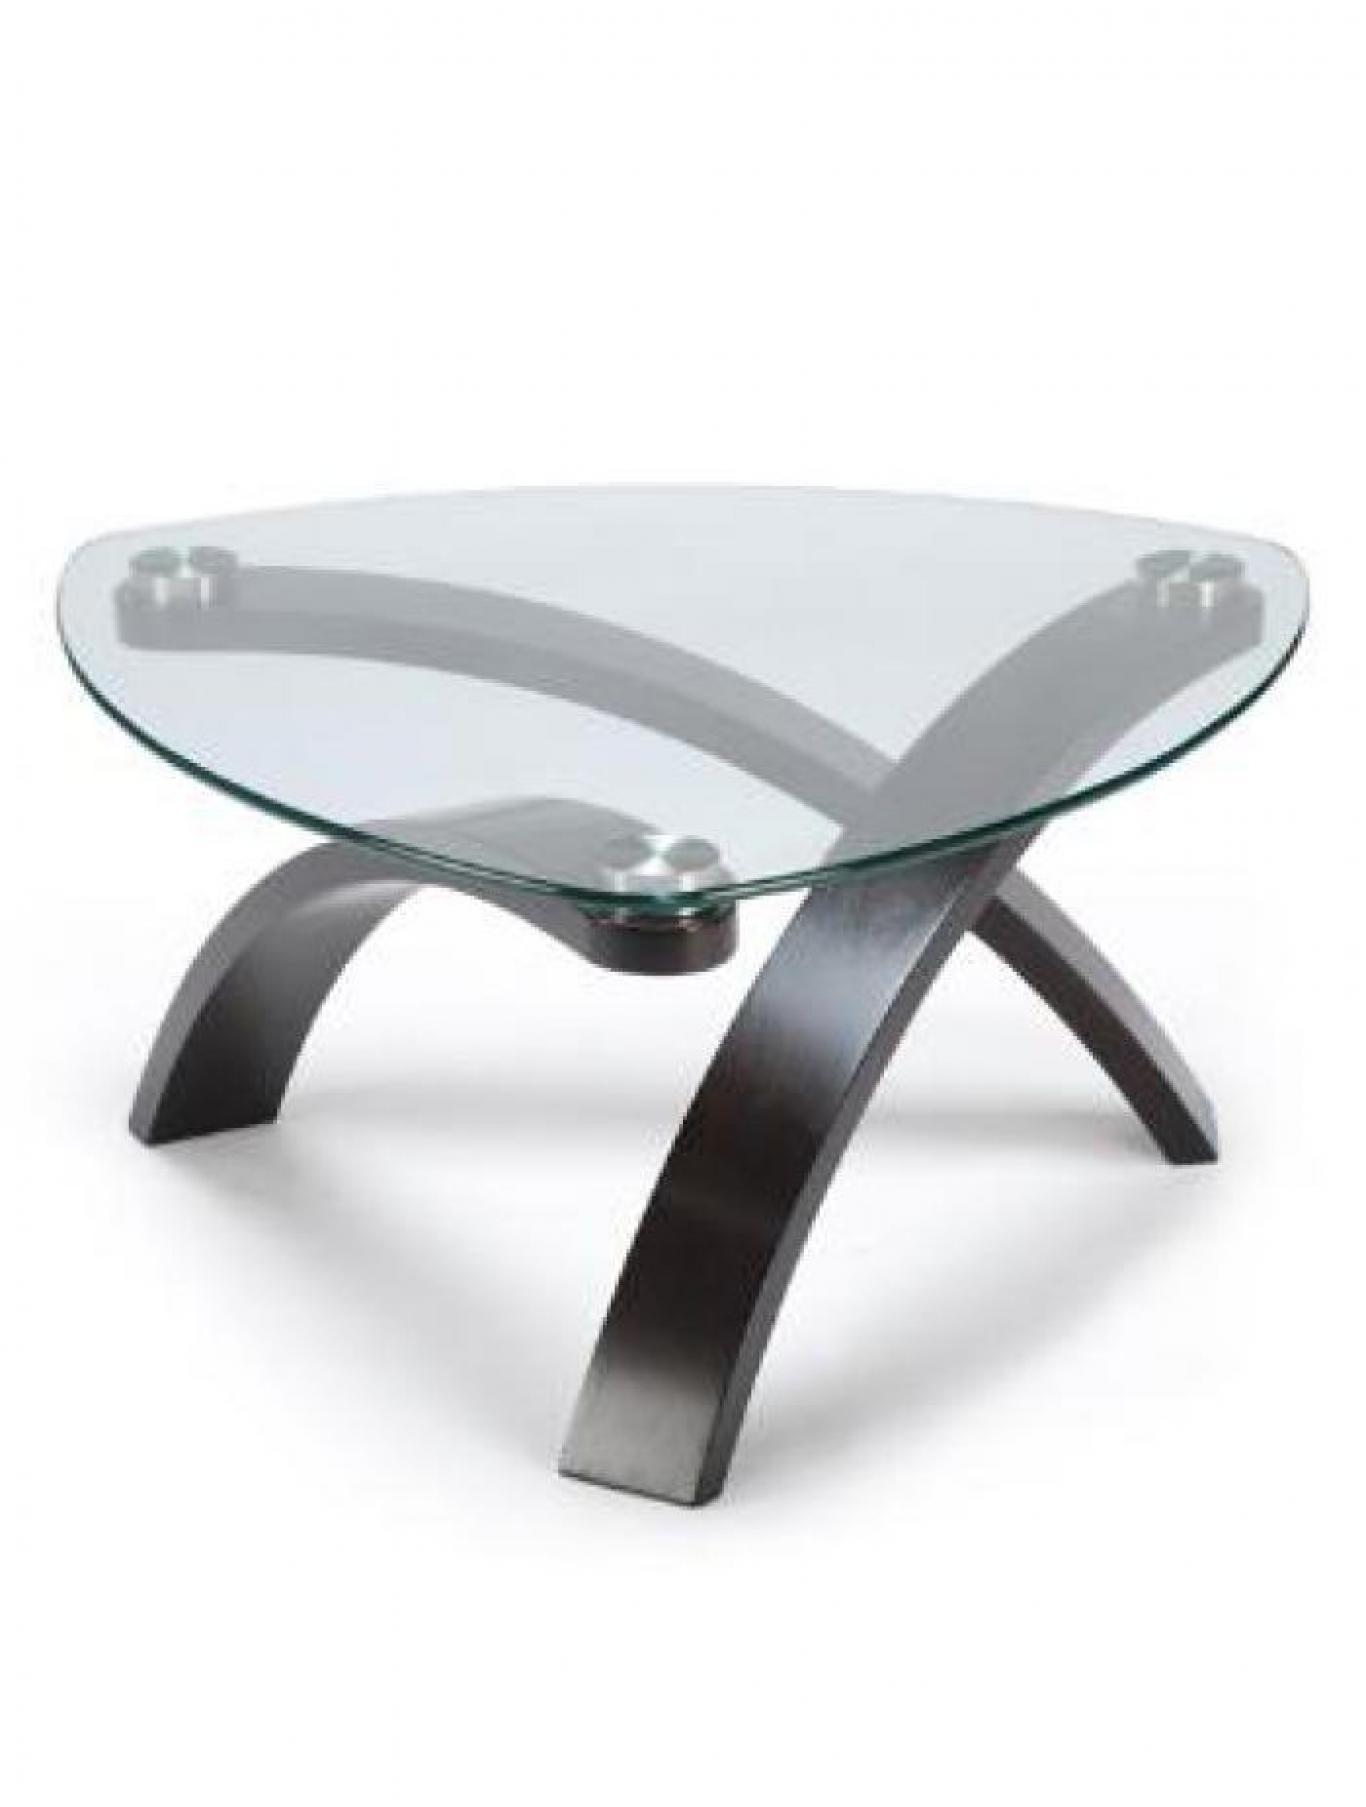 Cocktail Table Wood/Glass Tri Bent,Brandywine Showcase